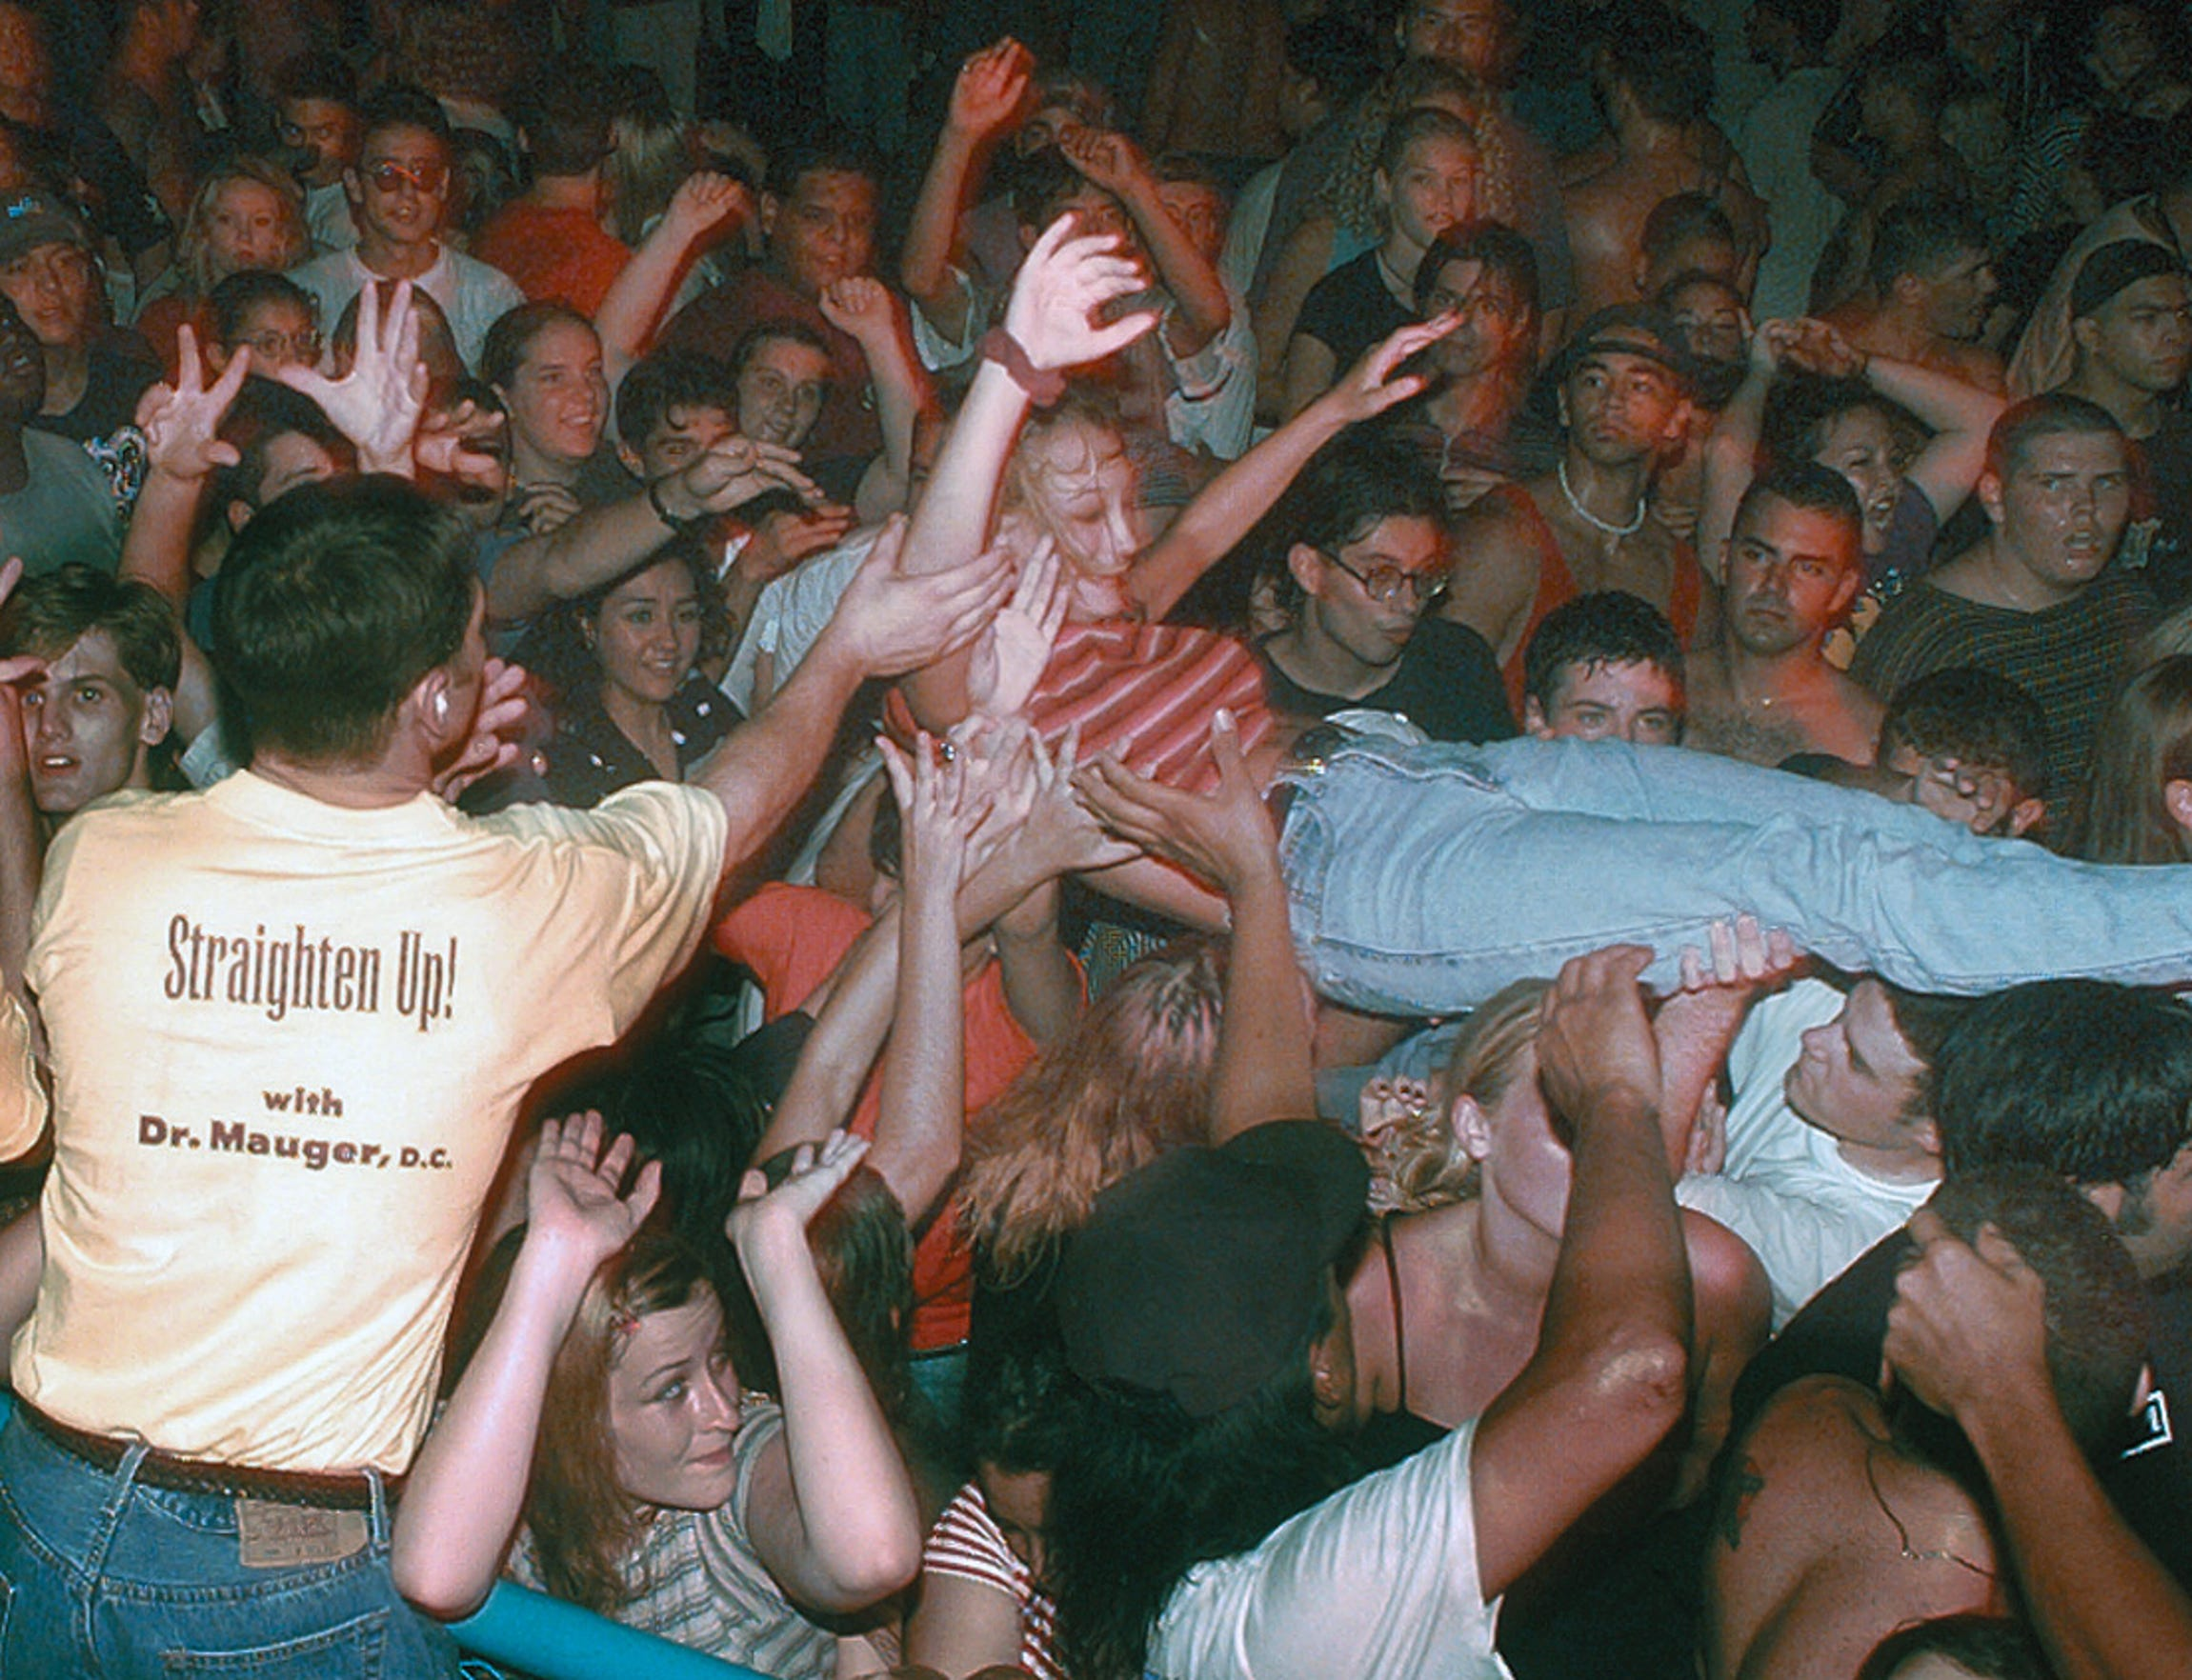 A concert goer is carried over the crowd toward a security guard at Texas Sky Festival Park in Corpus Christi during the Toadies concert on July 6, 1996.